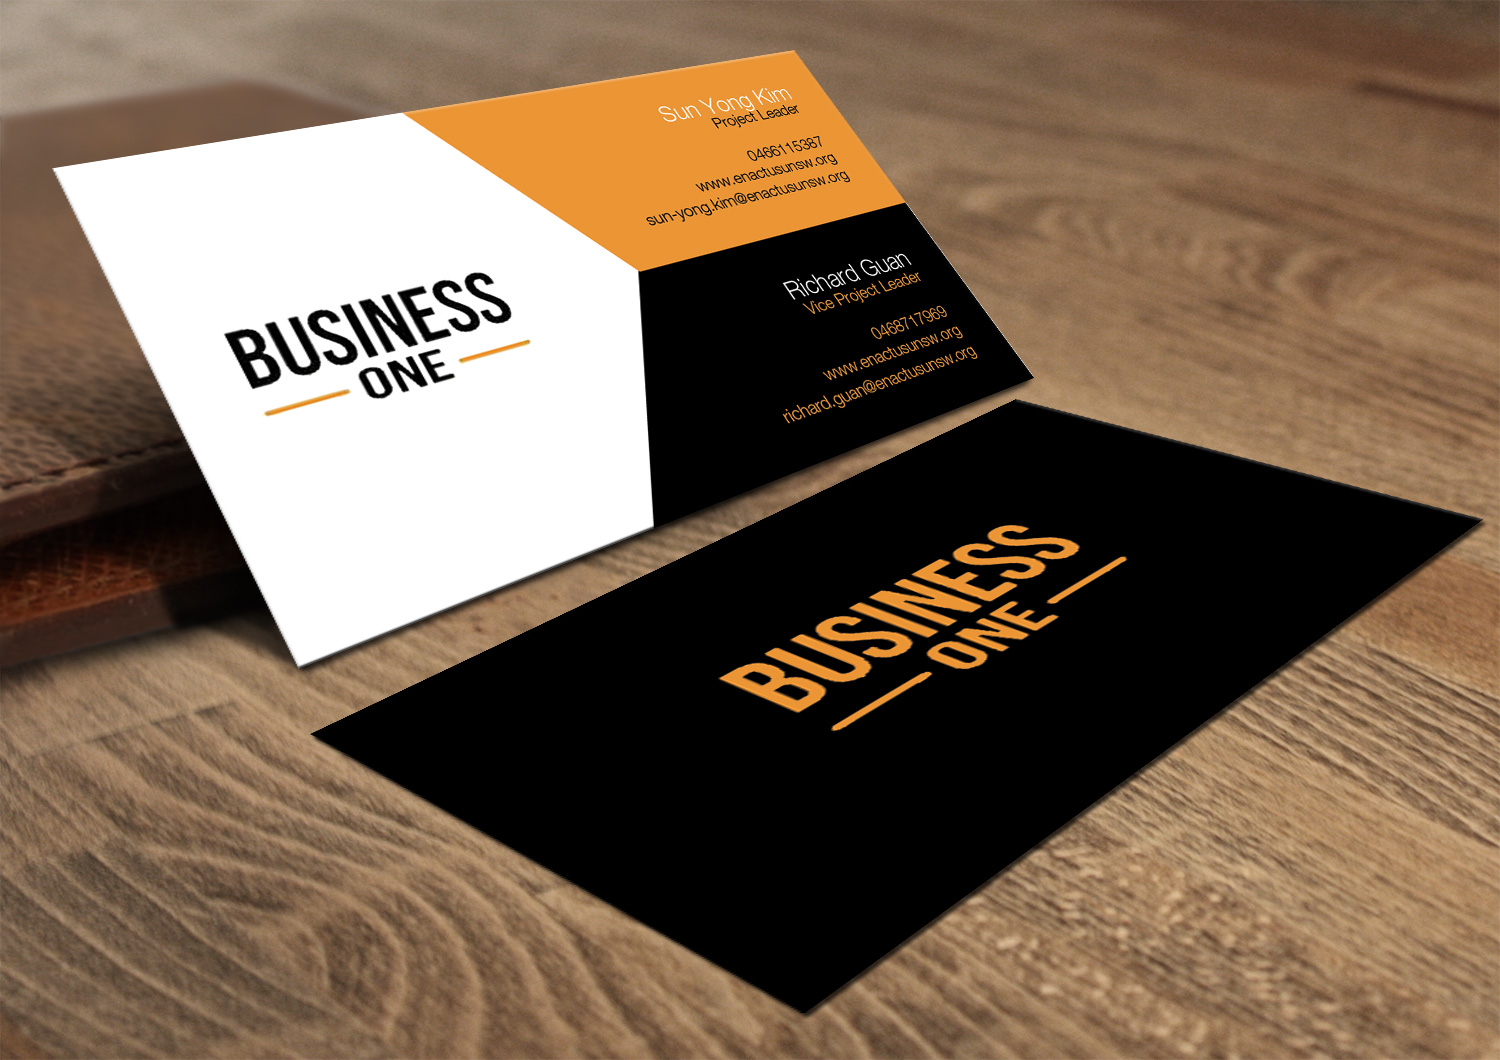 Business business card design for a company by creation lanka business card design by creation lanka for this project design 5289961 colourmoves